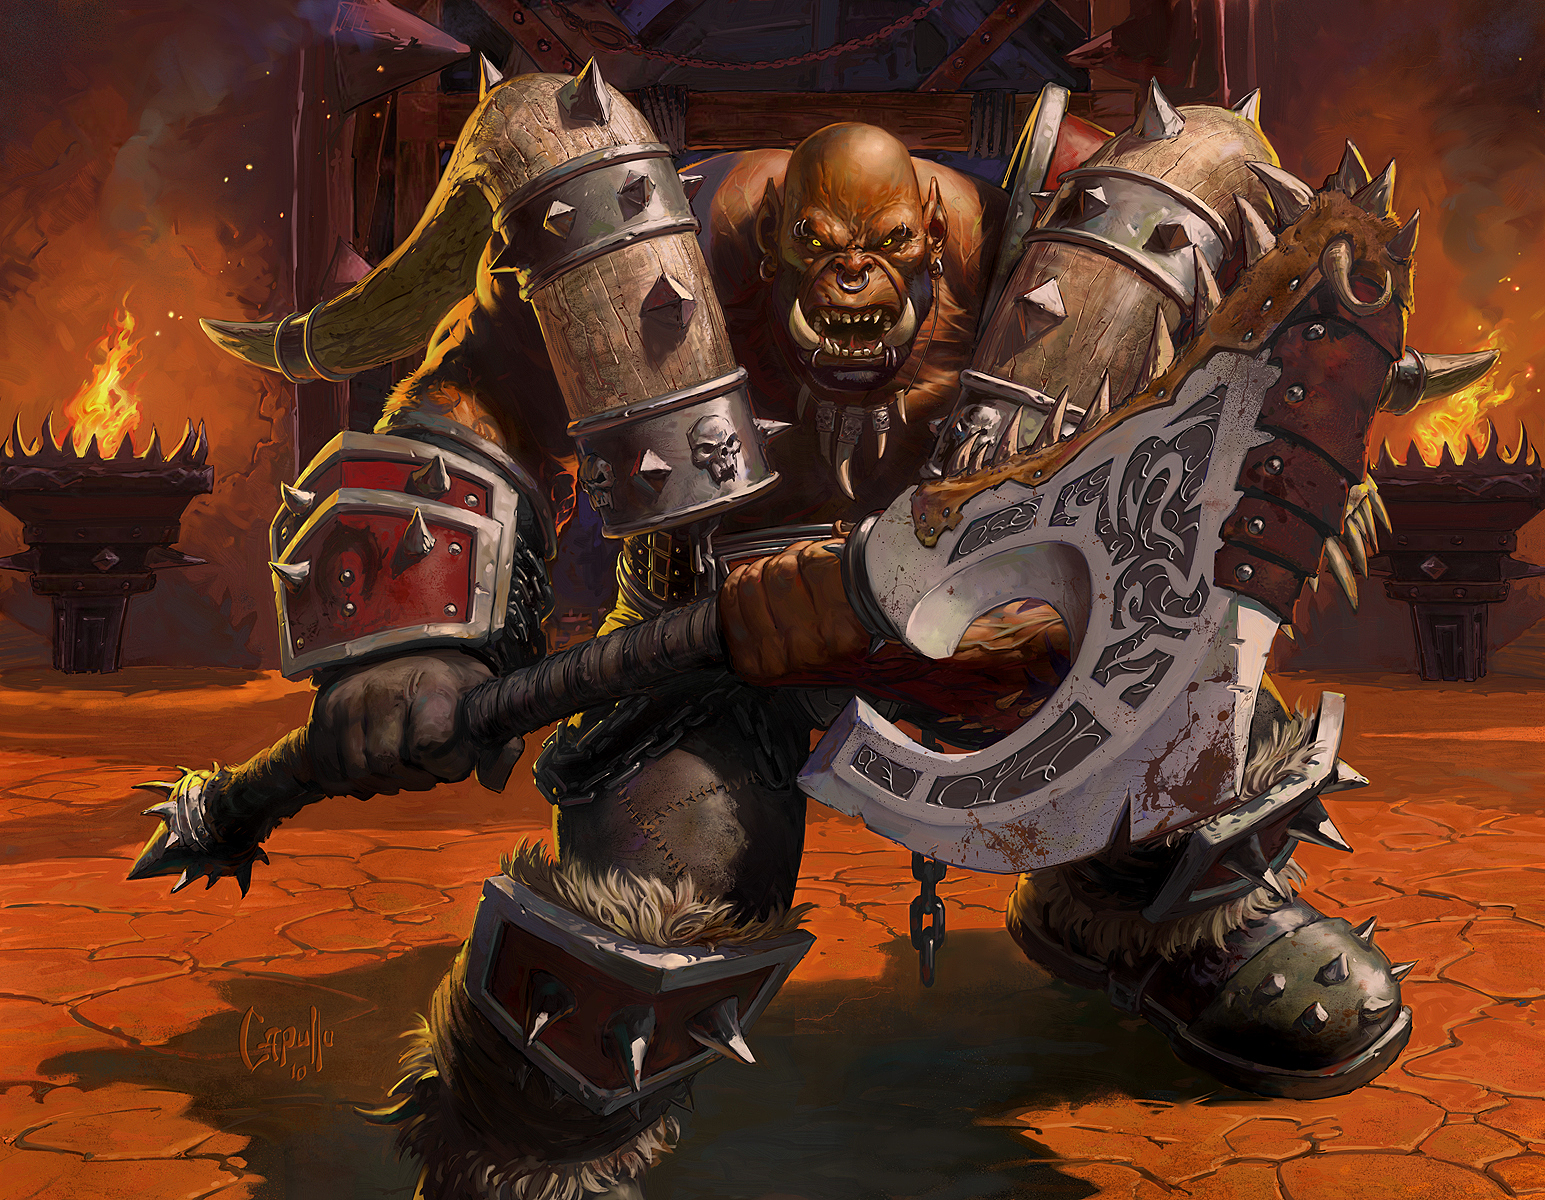 artwork-garrosh-hellscream-full